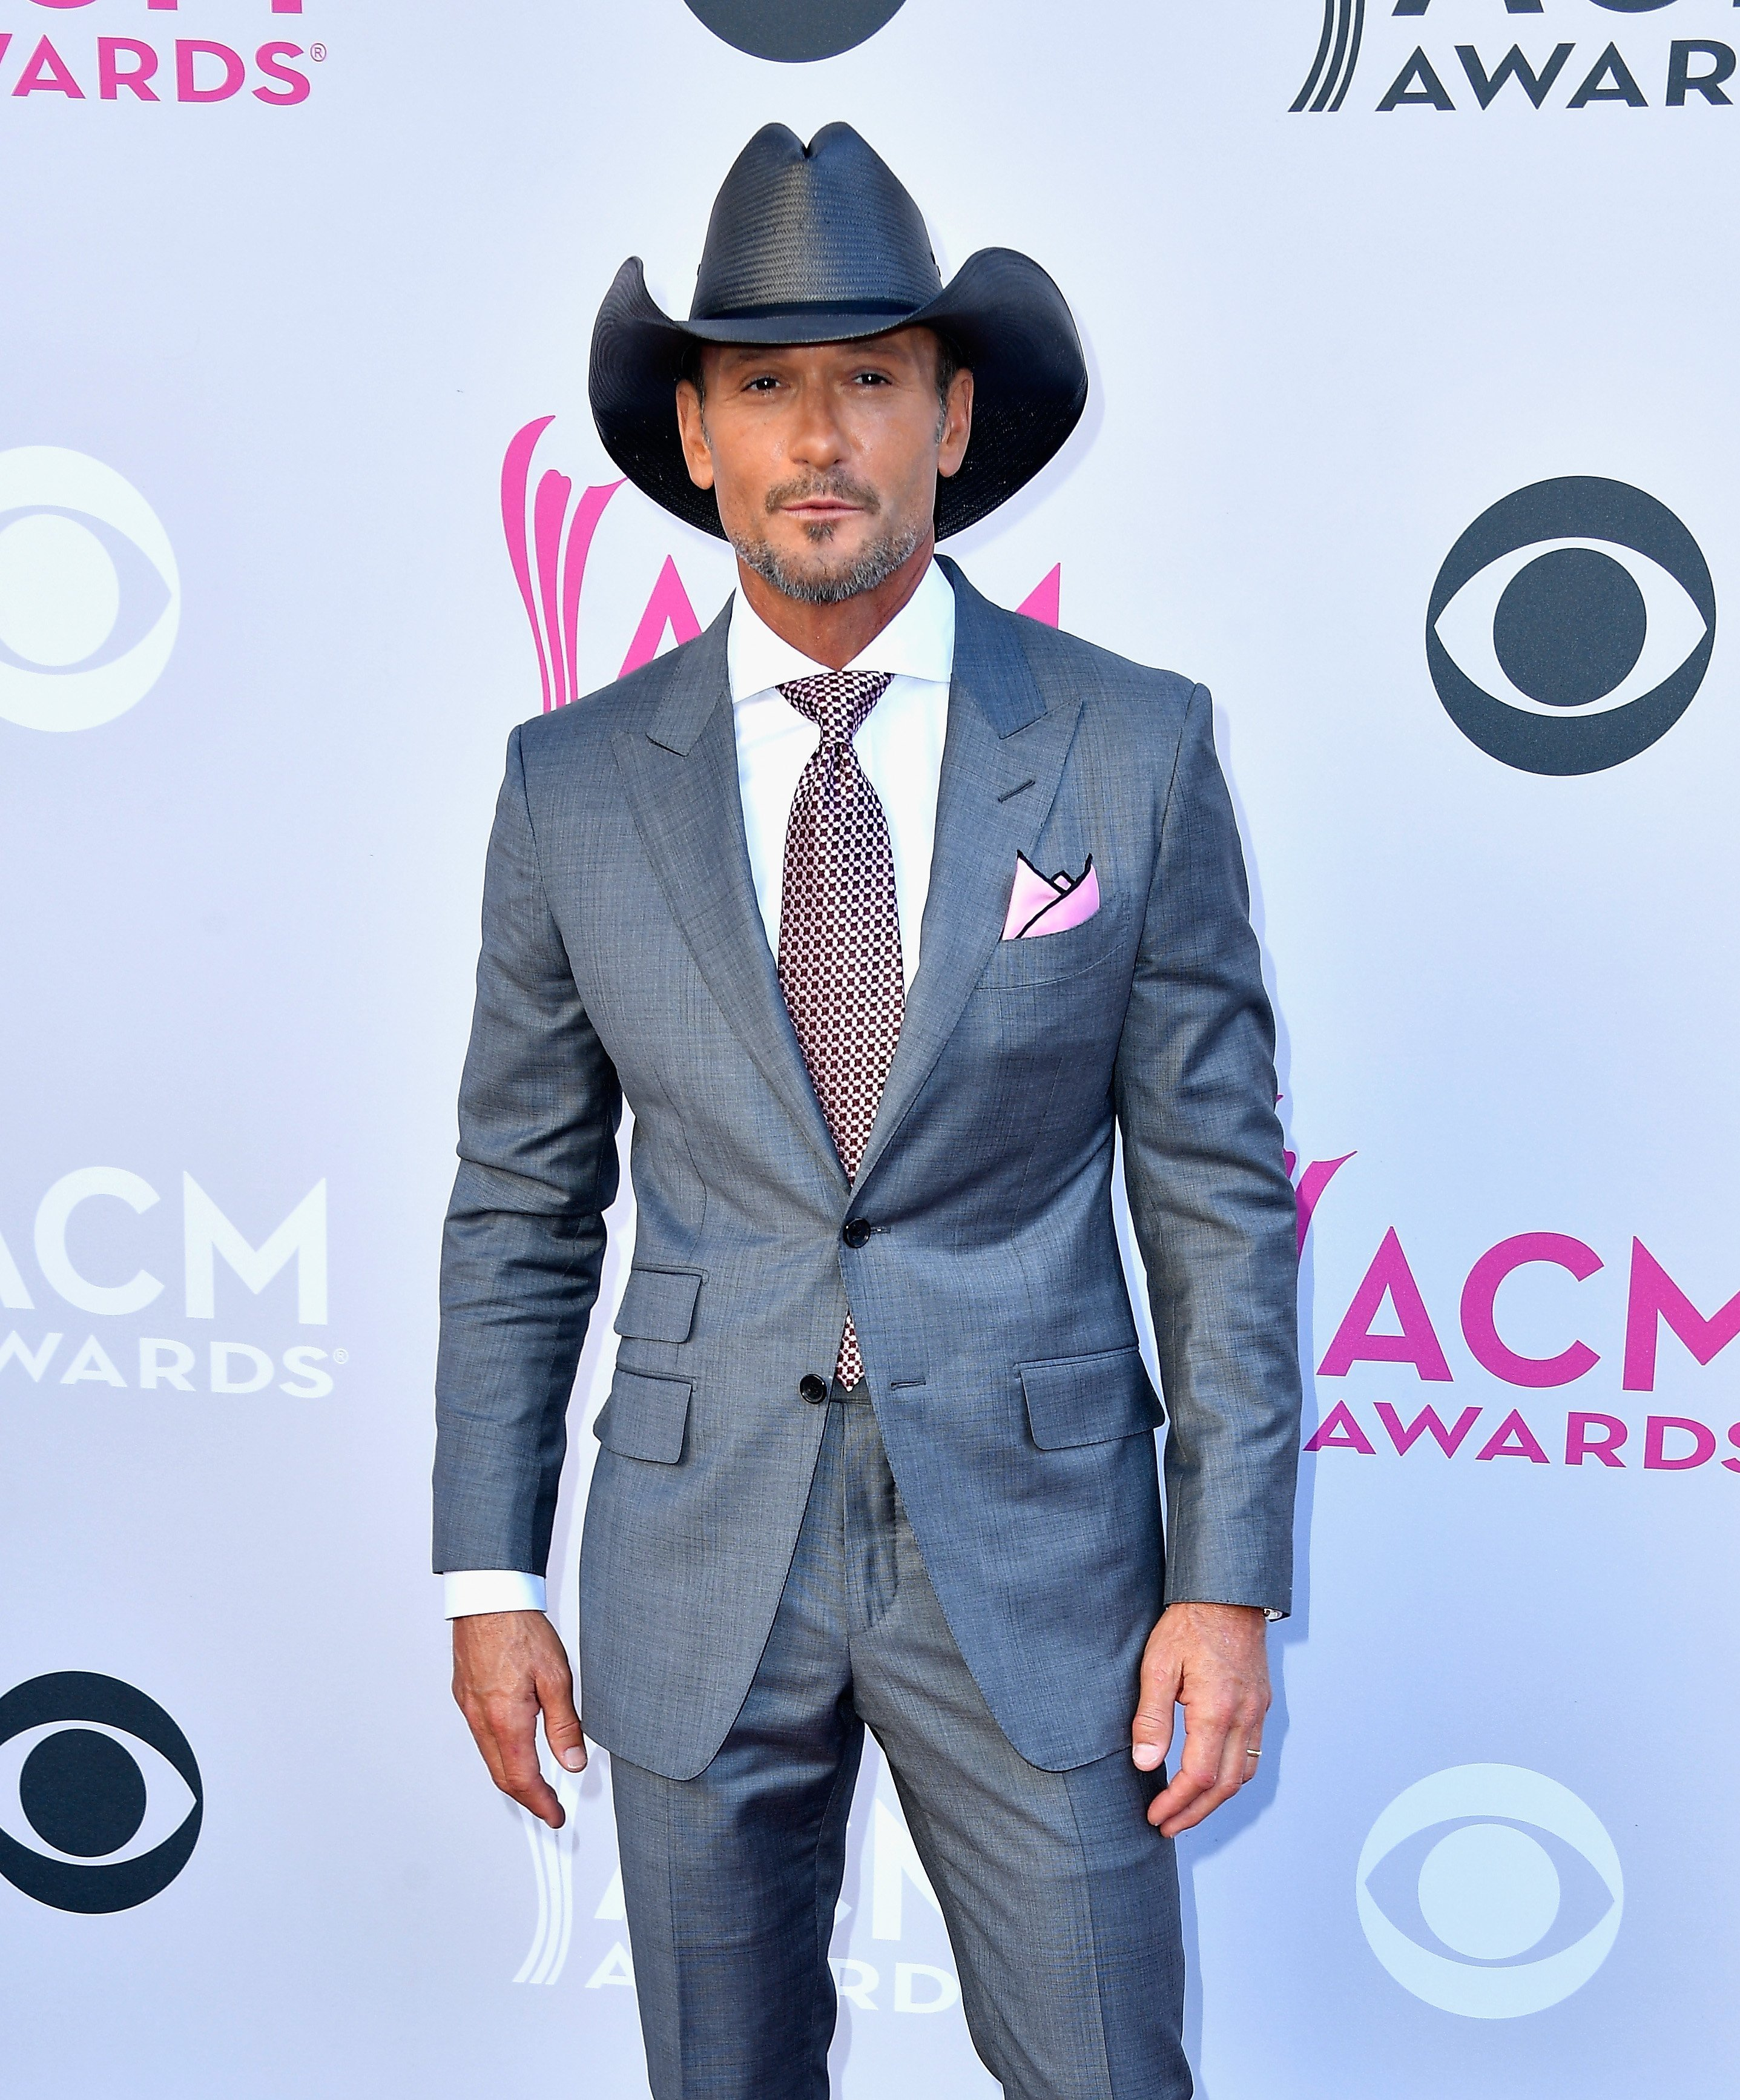 Tim McGraw attends the 52nd Academy of Country Music Awards on April 2, 201 7 in Las Vegas, Nevada   Source: Getty Images/GlobalImagesUkraine